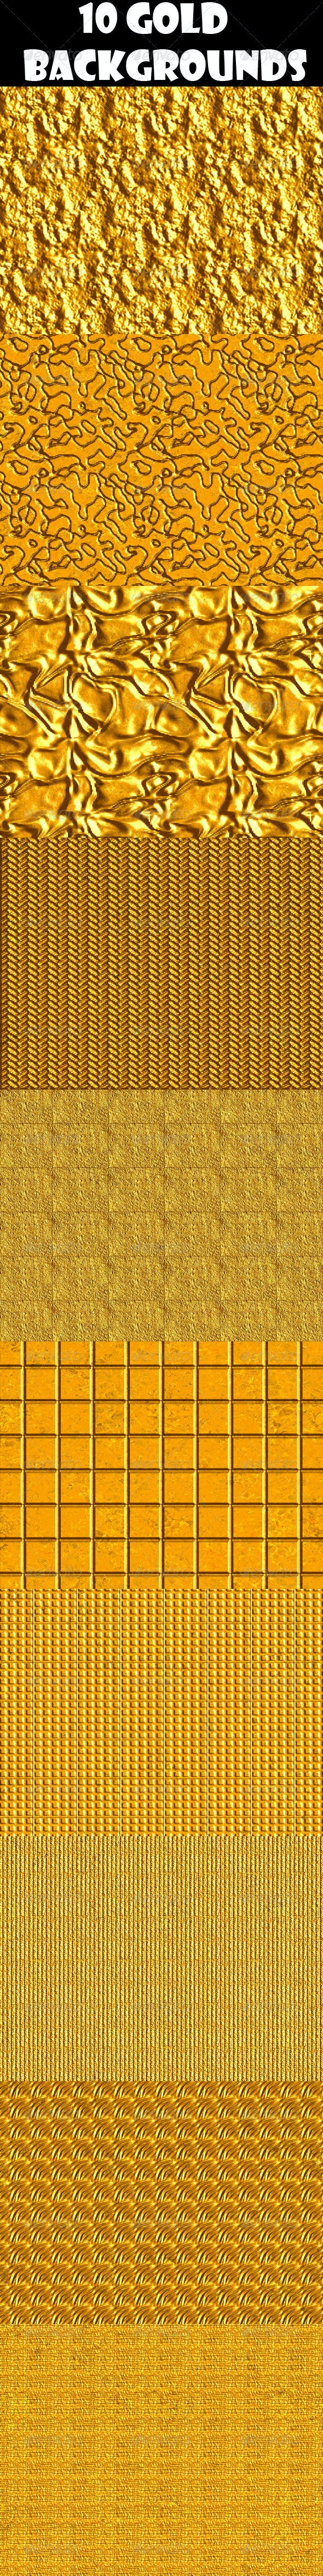 10 Gold Backgrounds - Patterns Backgrounds